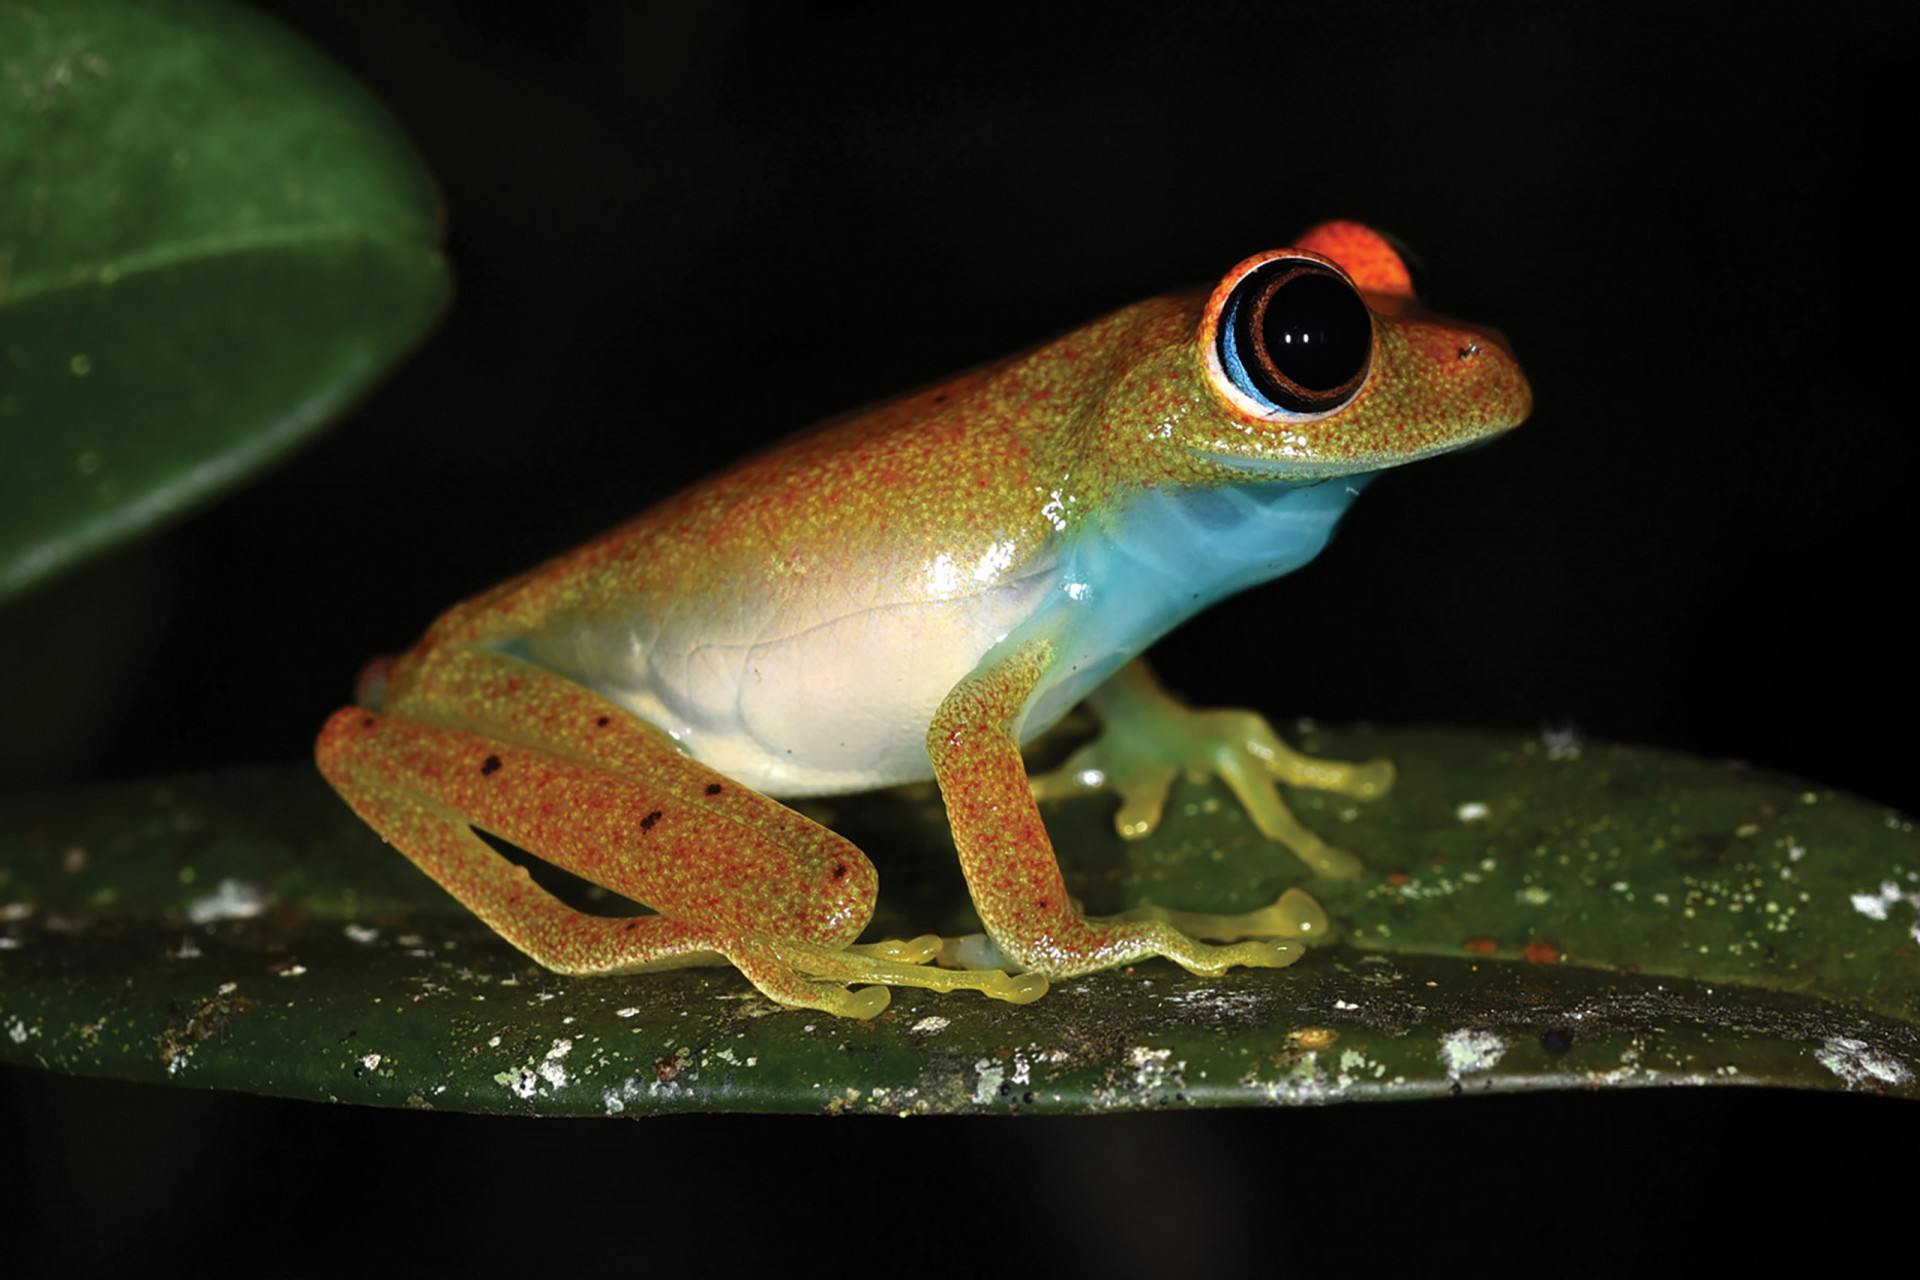 Boophis viridis, Green bright-eyed frog, endemic to Madagascar